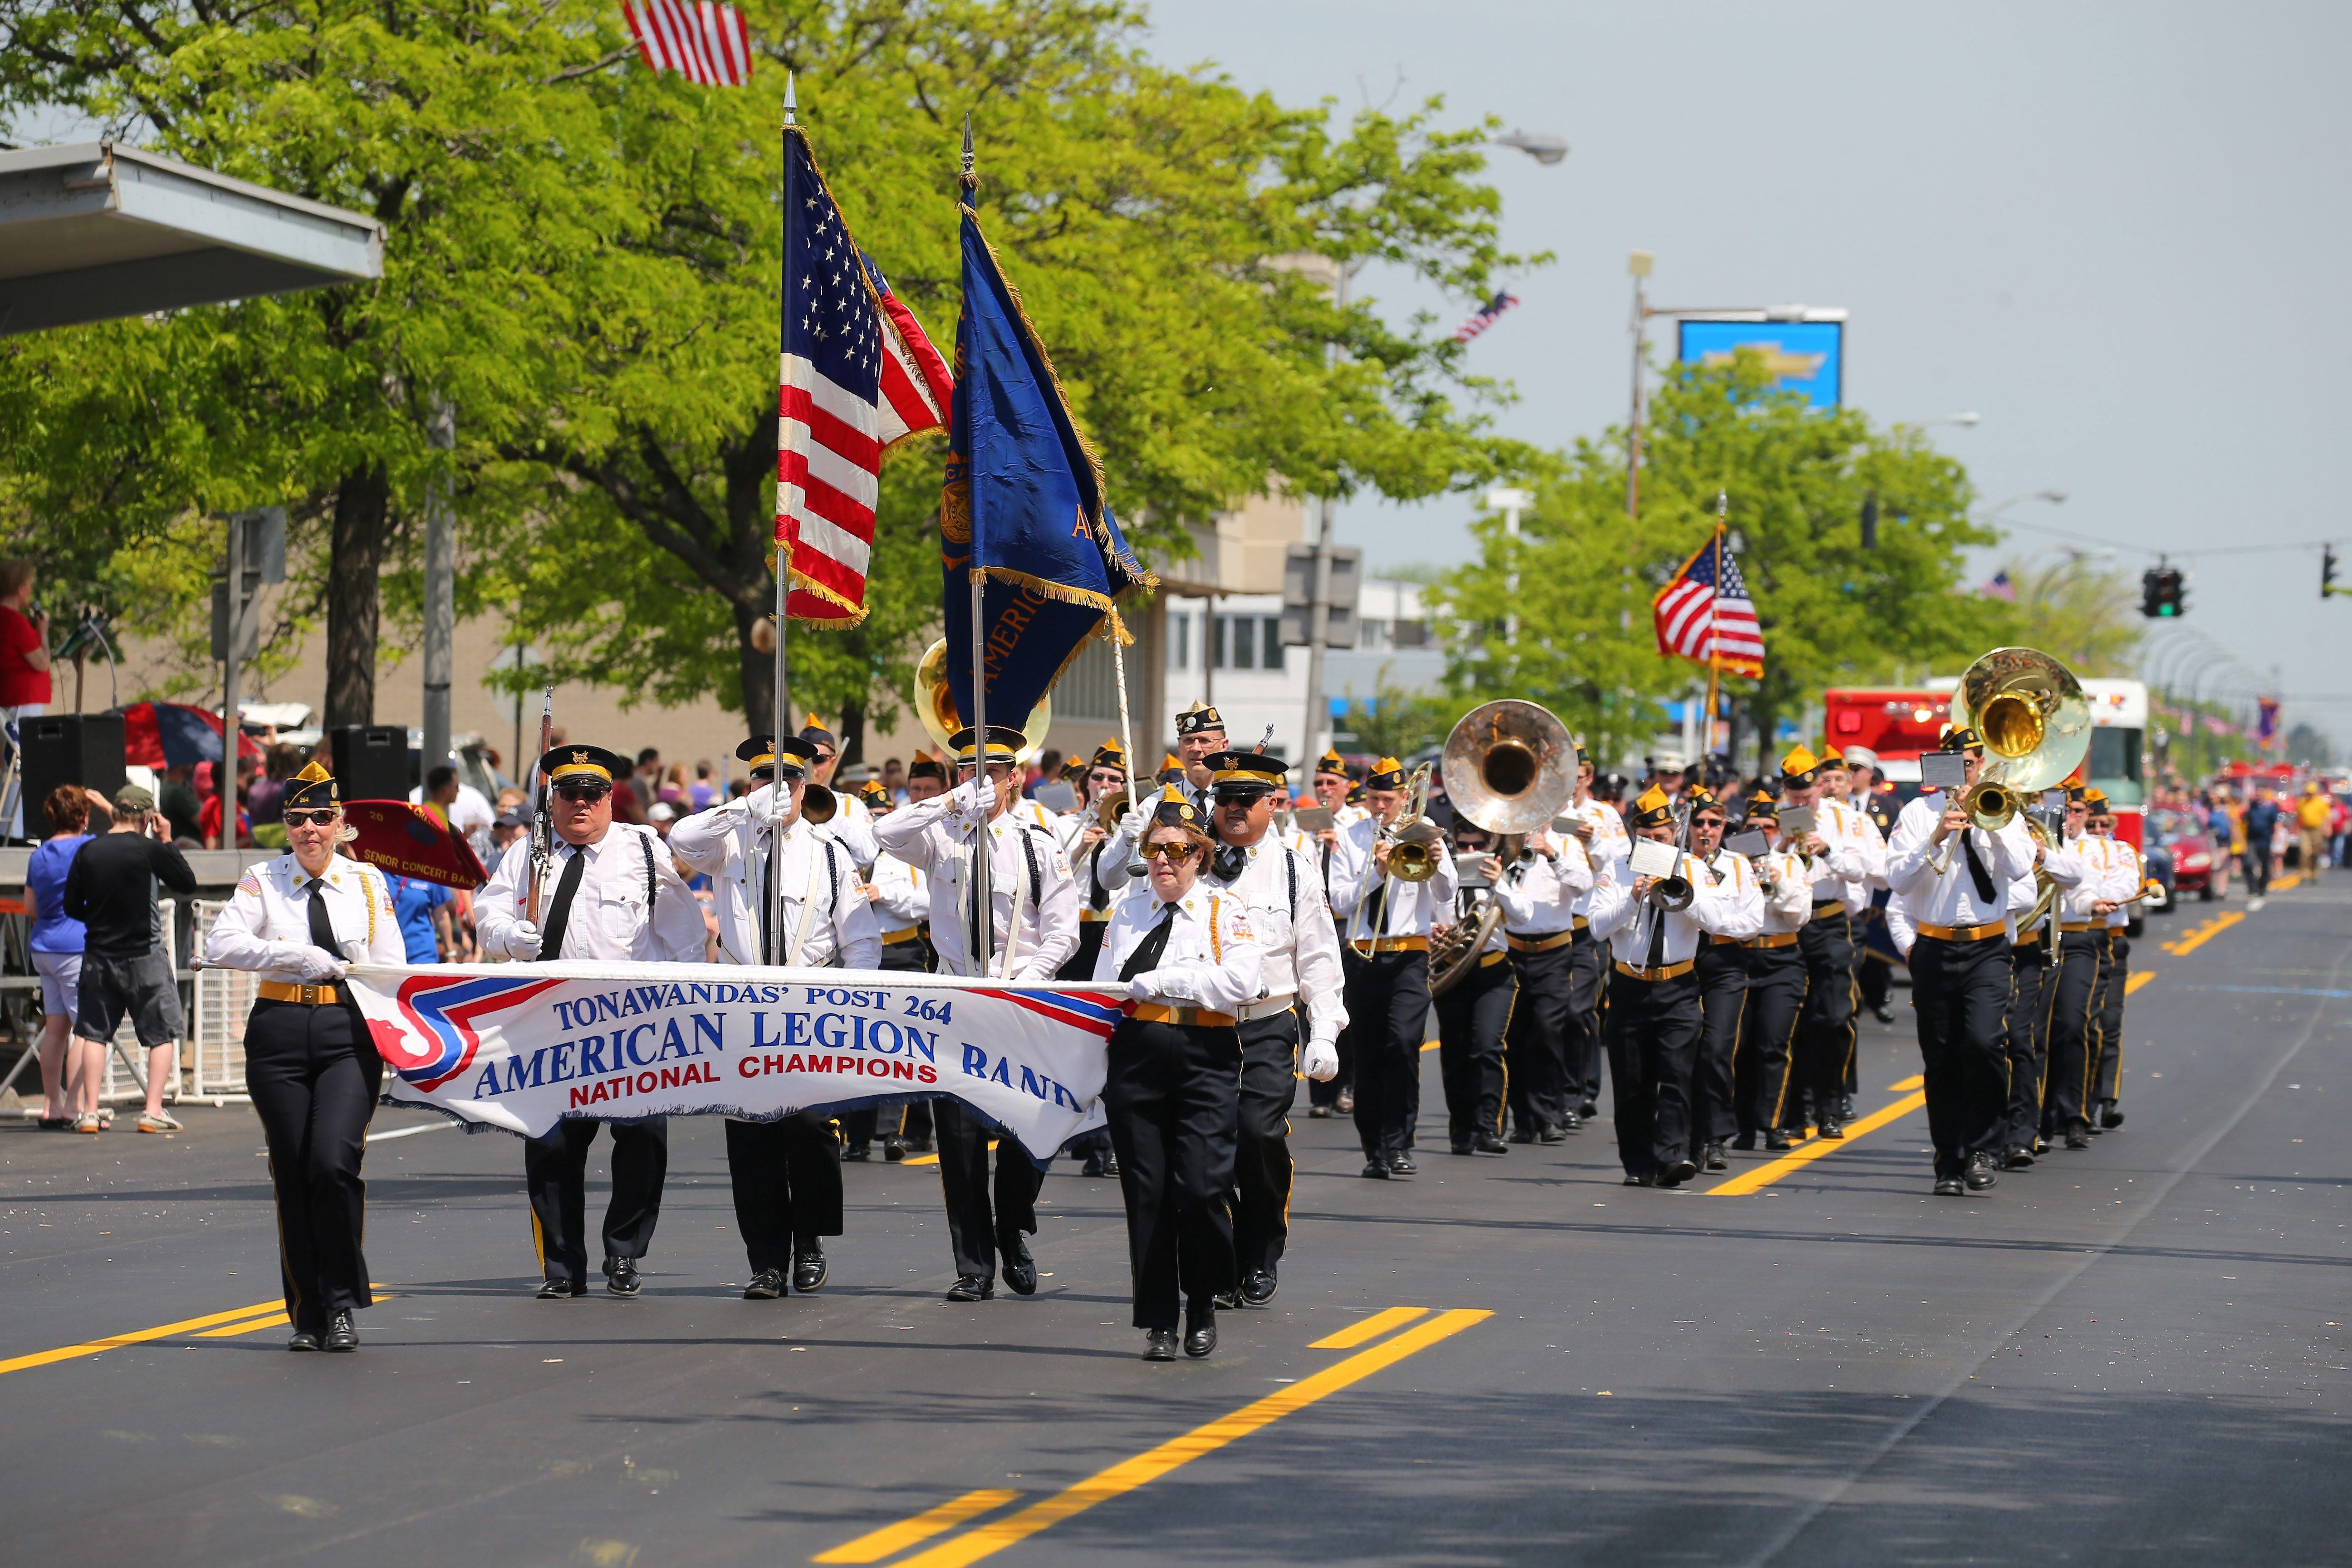 """Marching band from Tonawandas Post 264, American Legion, is among the units participating in the 68th annual Ken-Ton Memorial Day Parade on Delaware Avenue. Among the spectators was a boy, 11, who expressed pride """"because people serve for our country to keep us safe."""""""